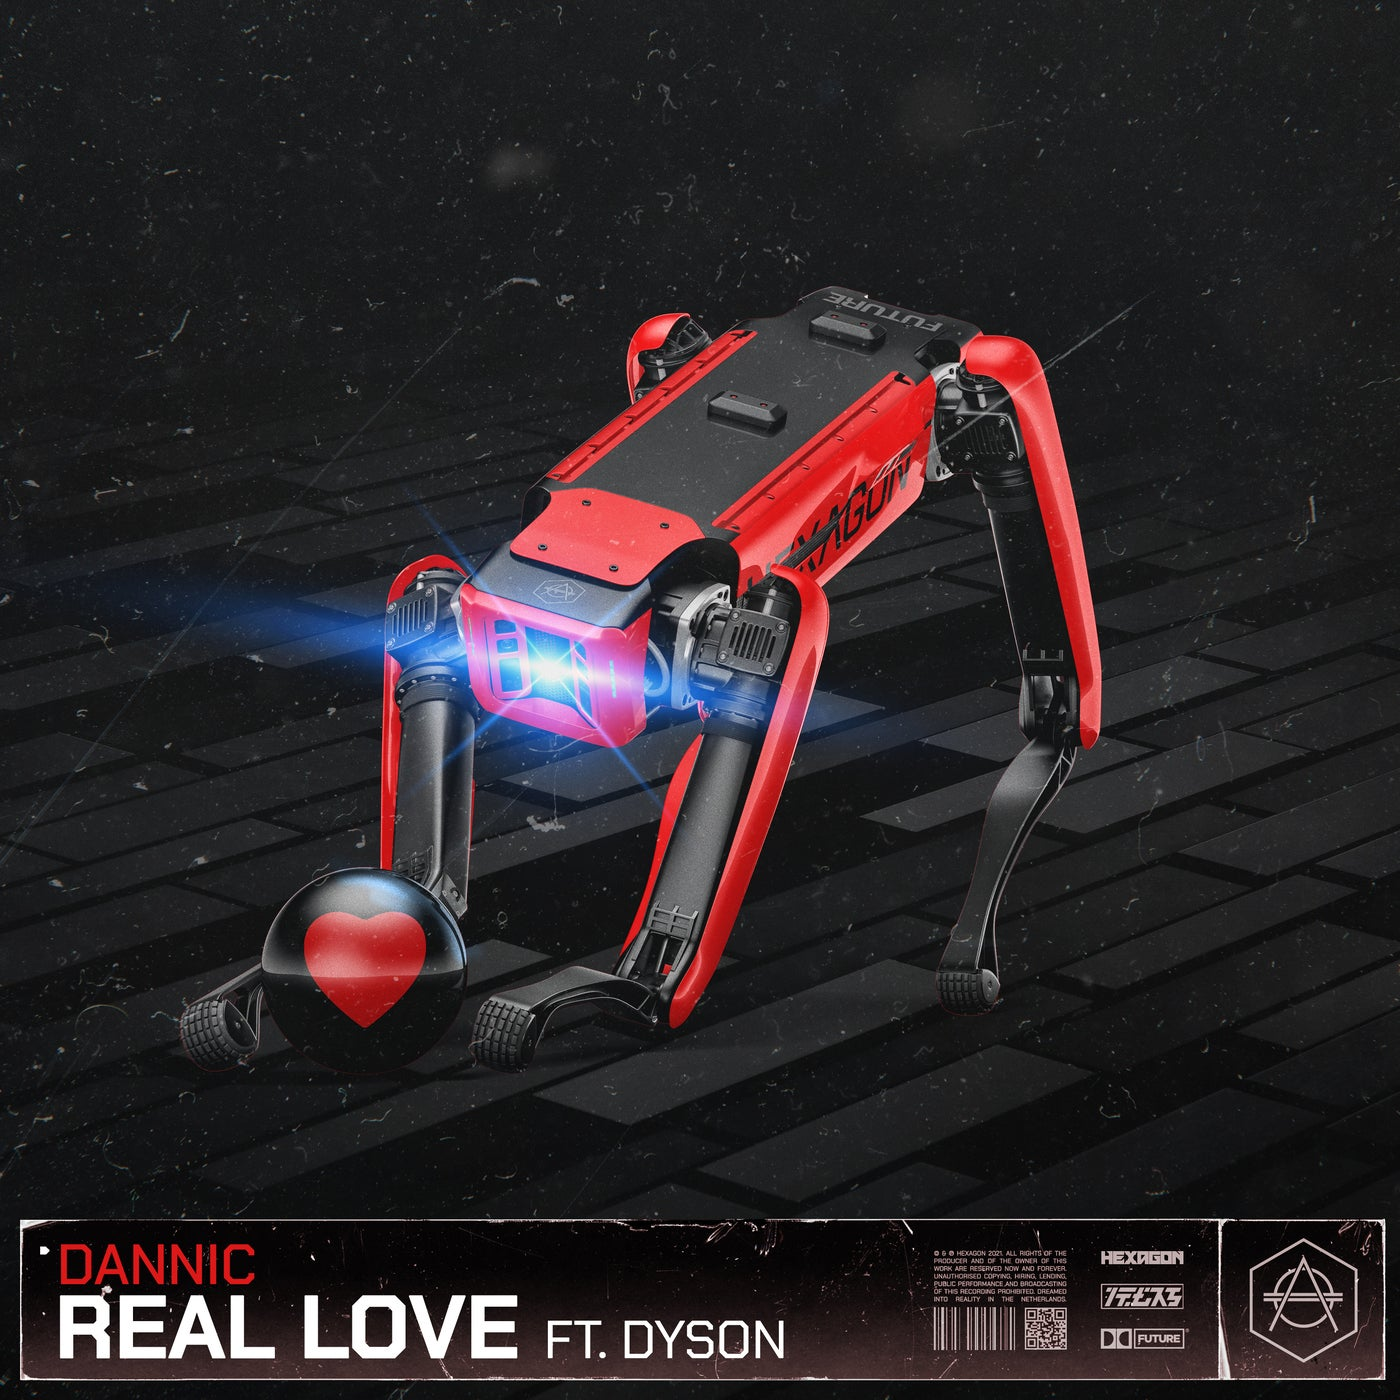 Real Love feat. Dyson (Extended Mix)